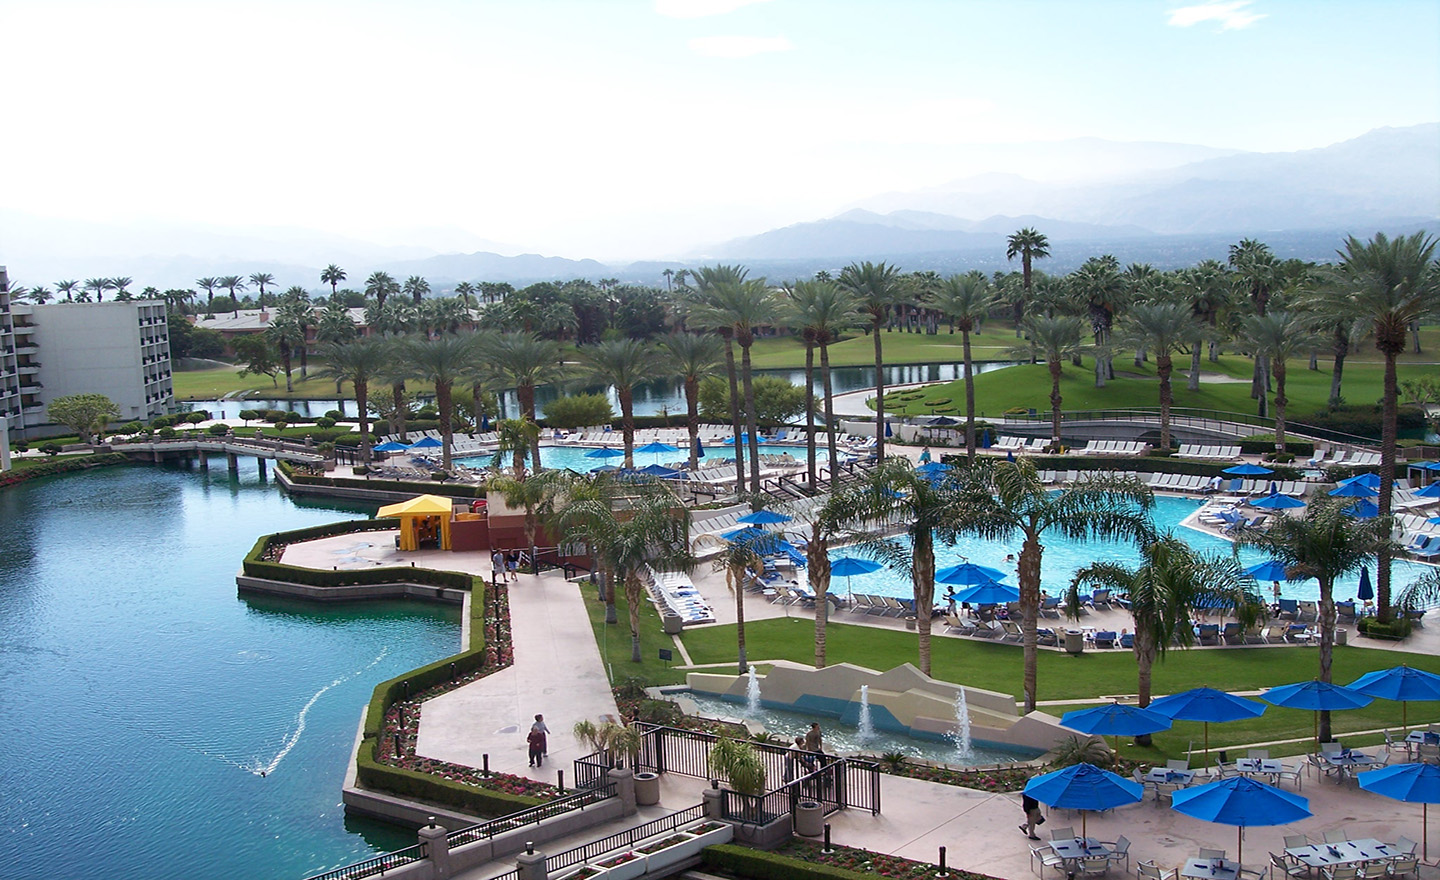 Marriott Desert Springs - Pacific Aquascape International